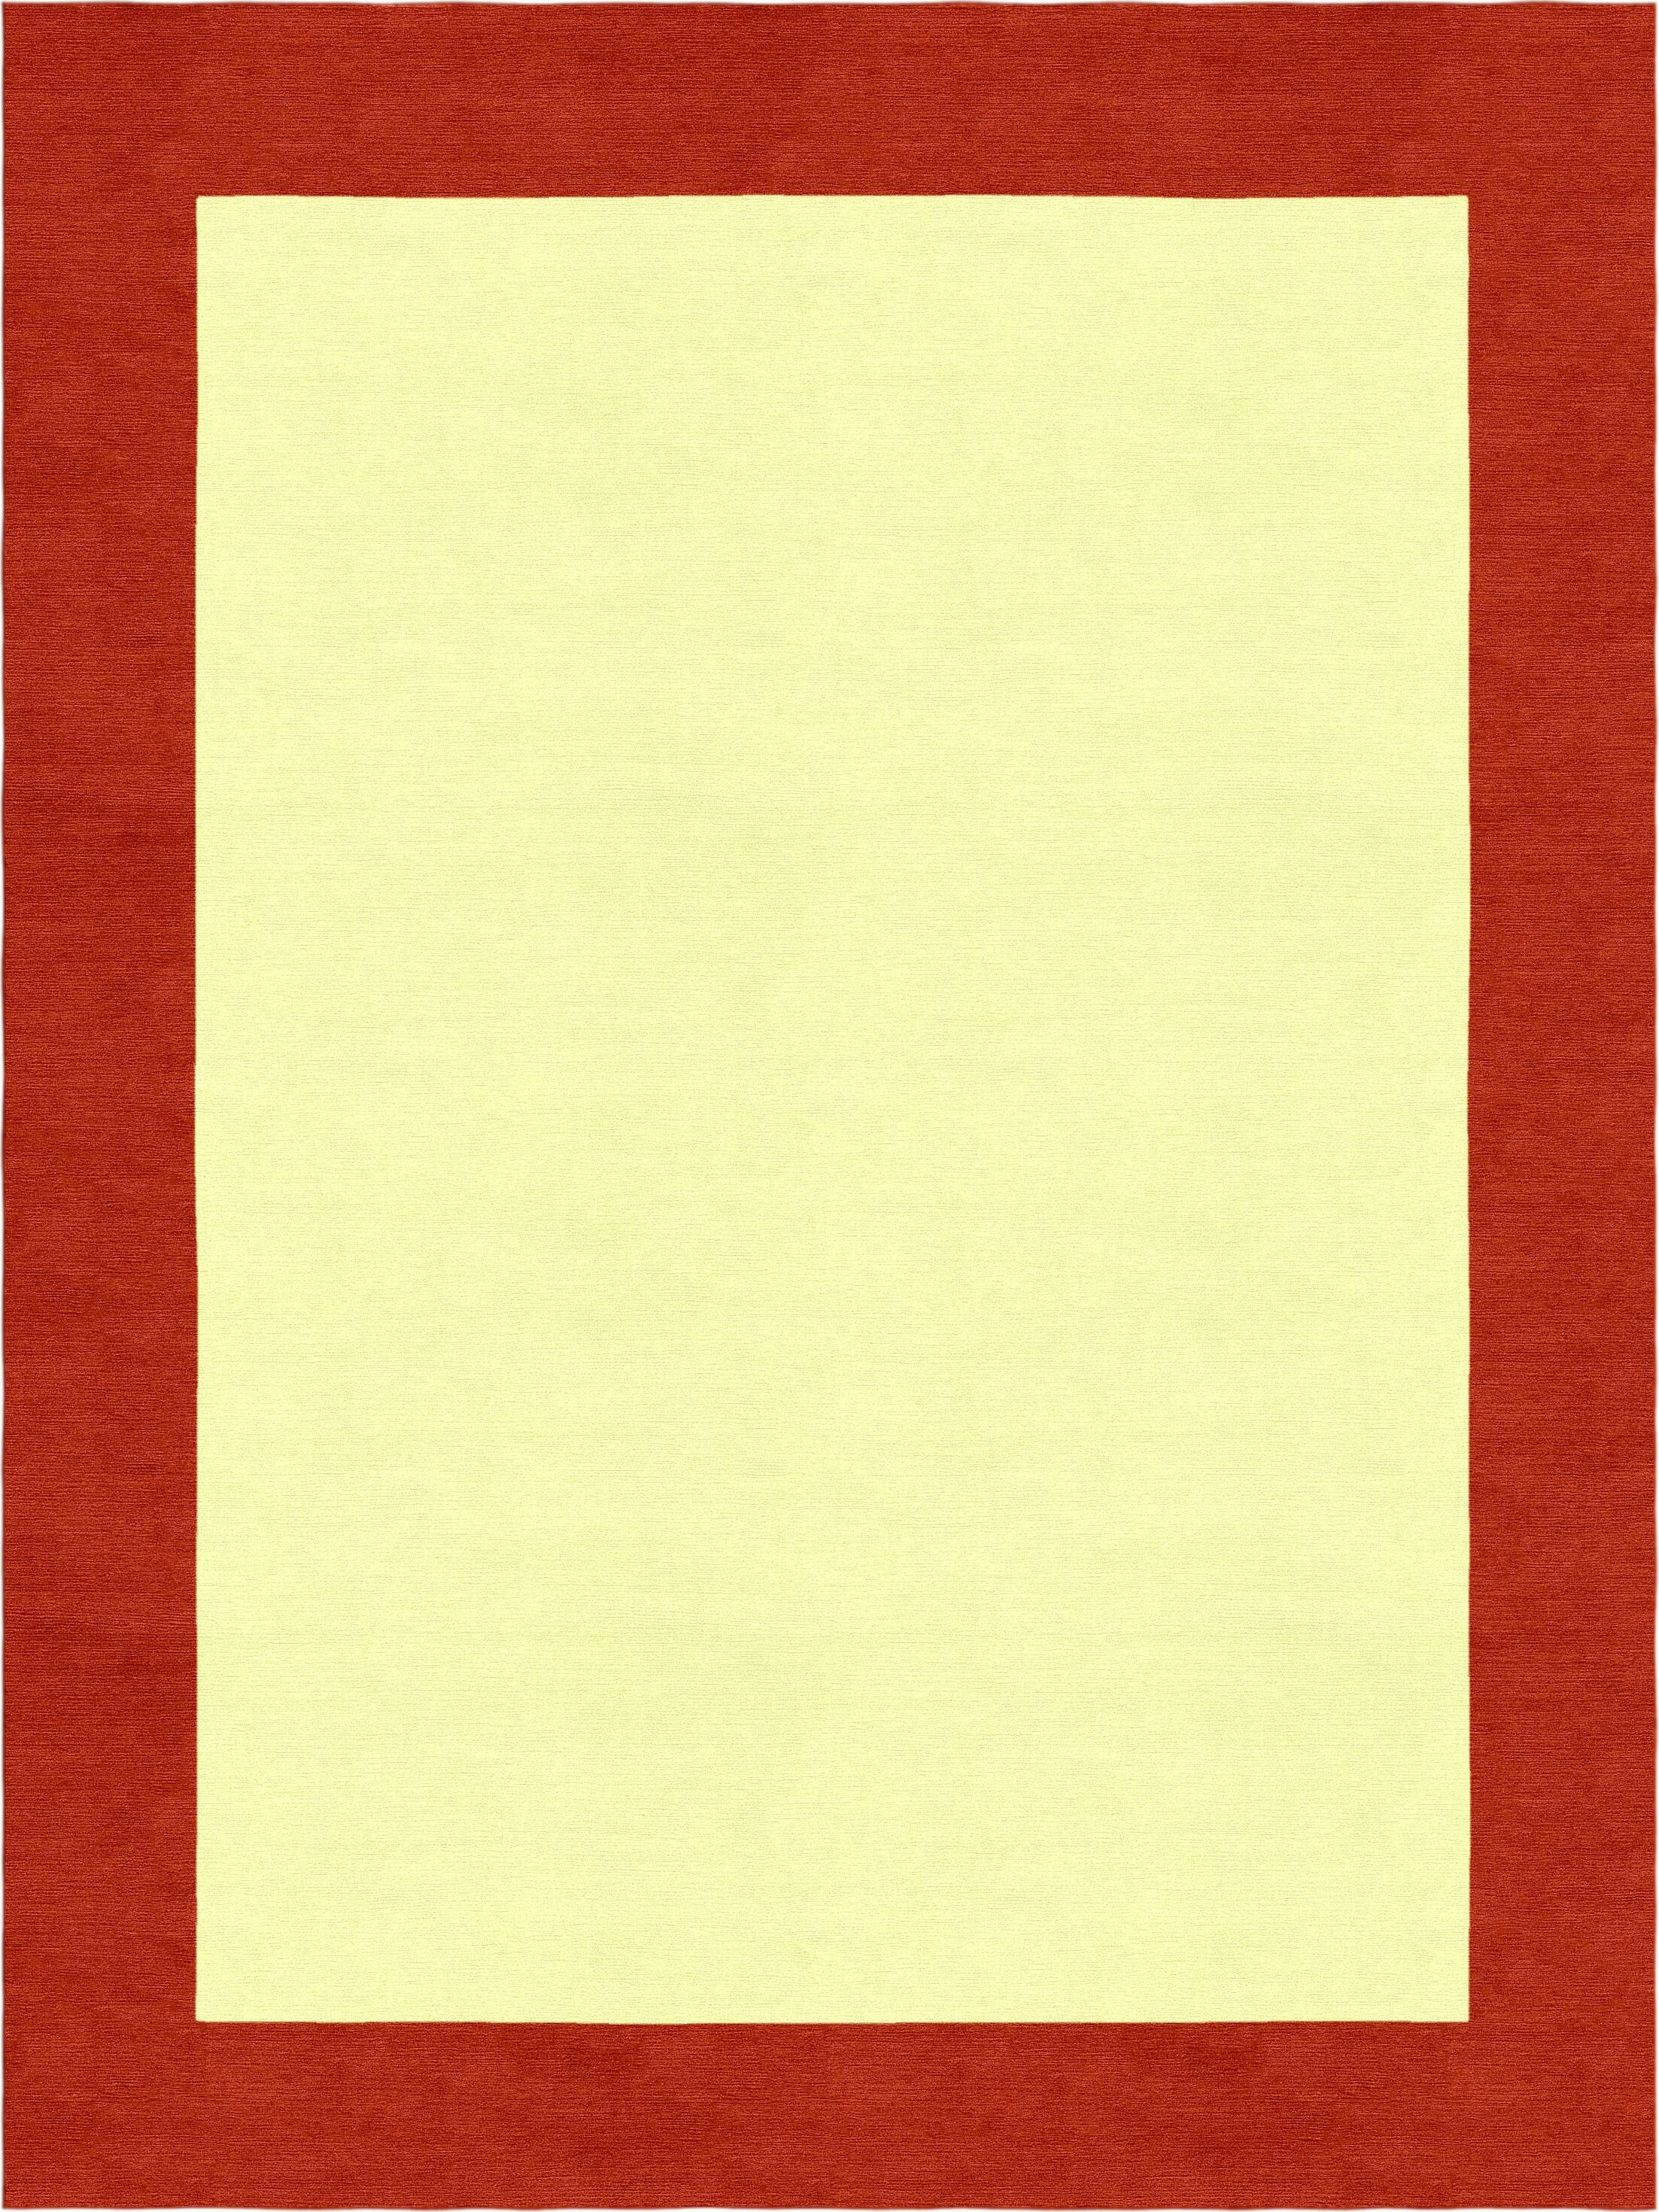 Highlands Hand-Tufted Wool Red/Yellow Area Rug Rug Size: Rectangle 8' X 10'